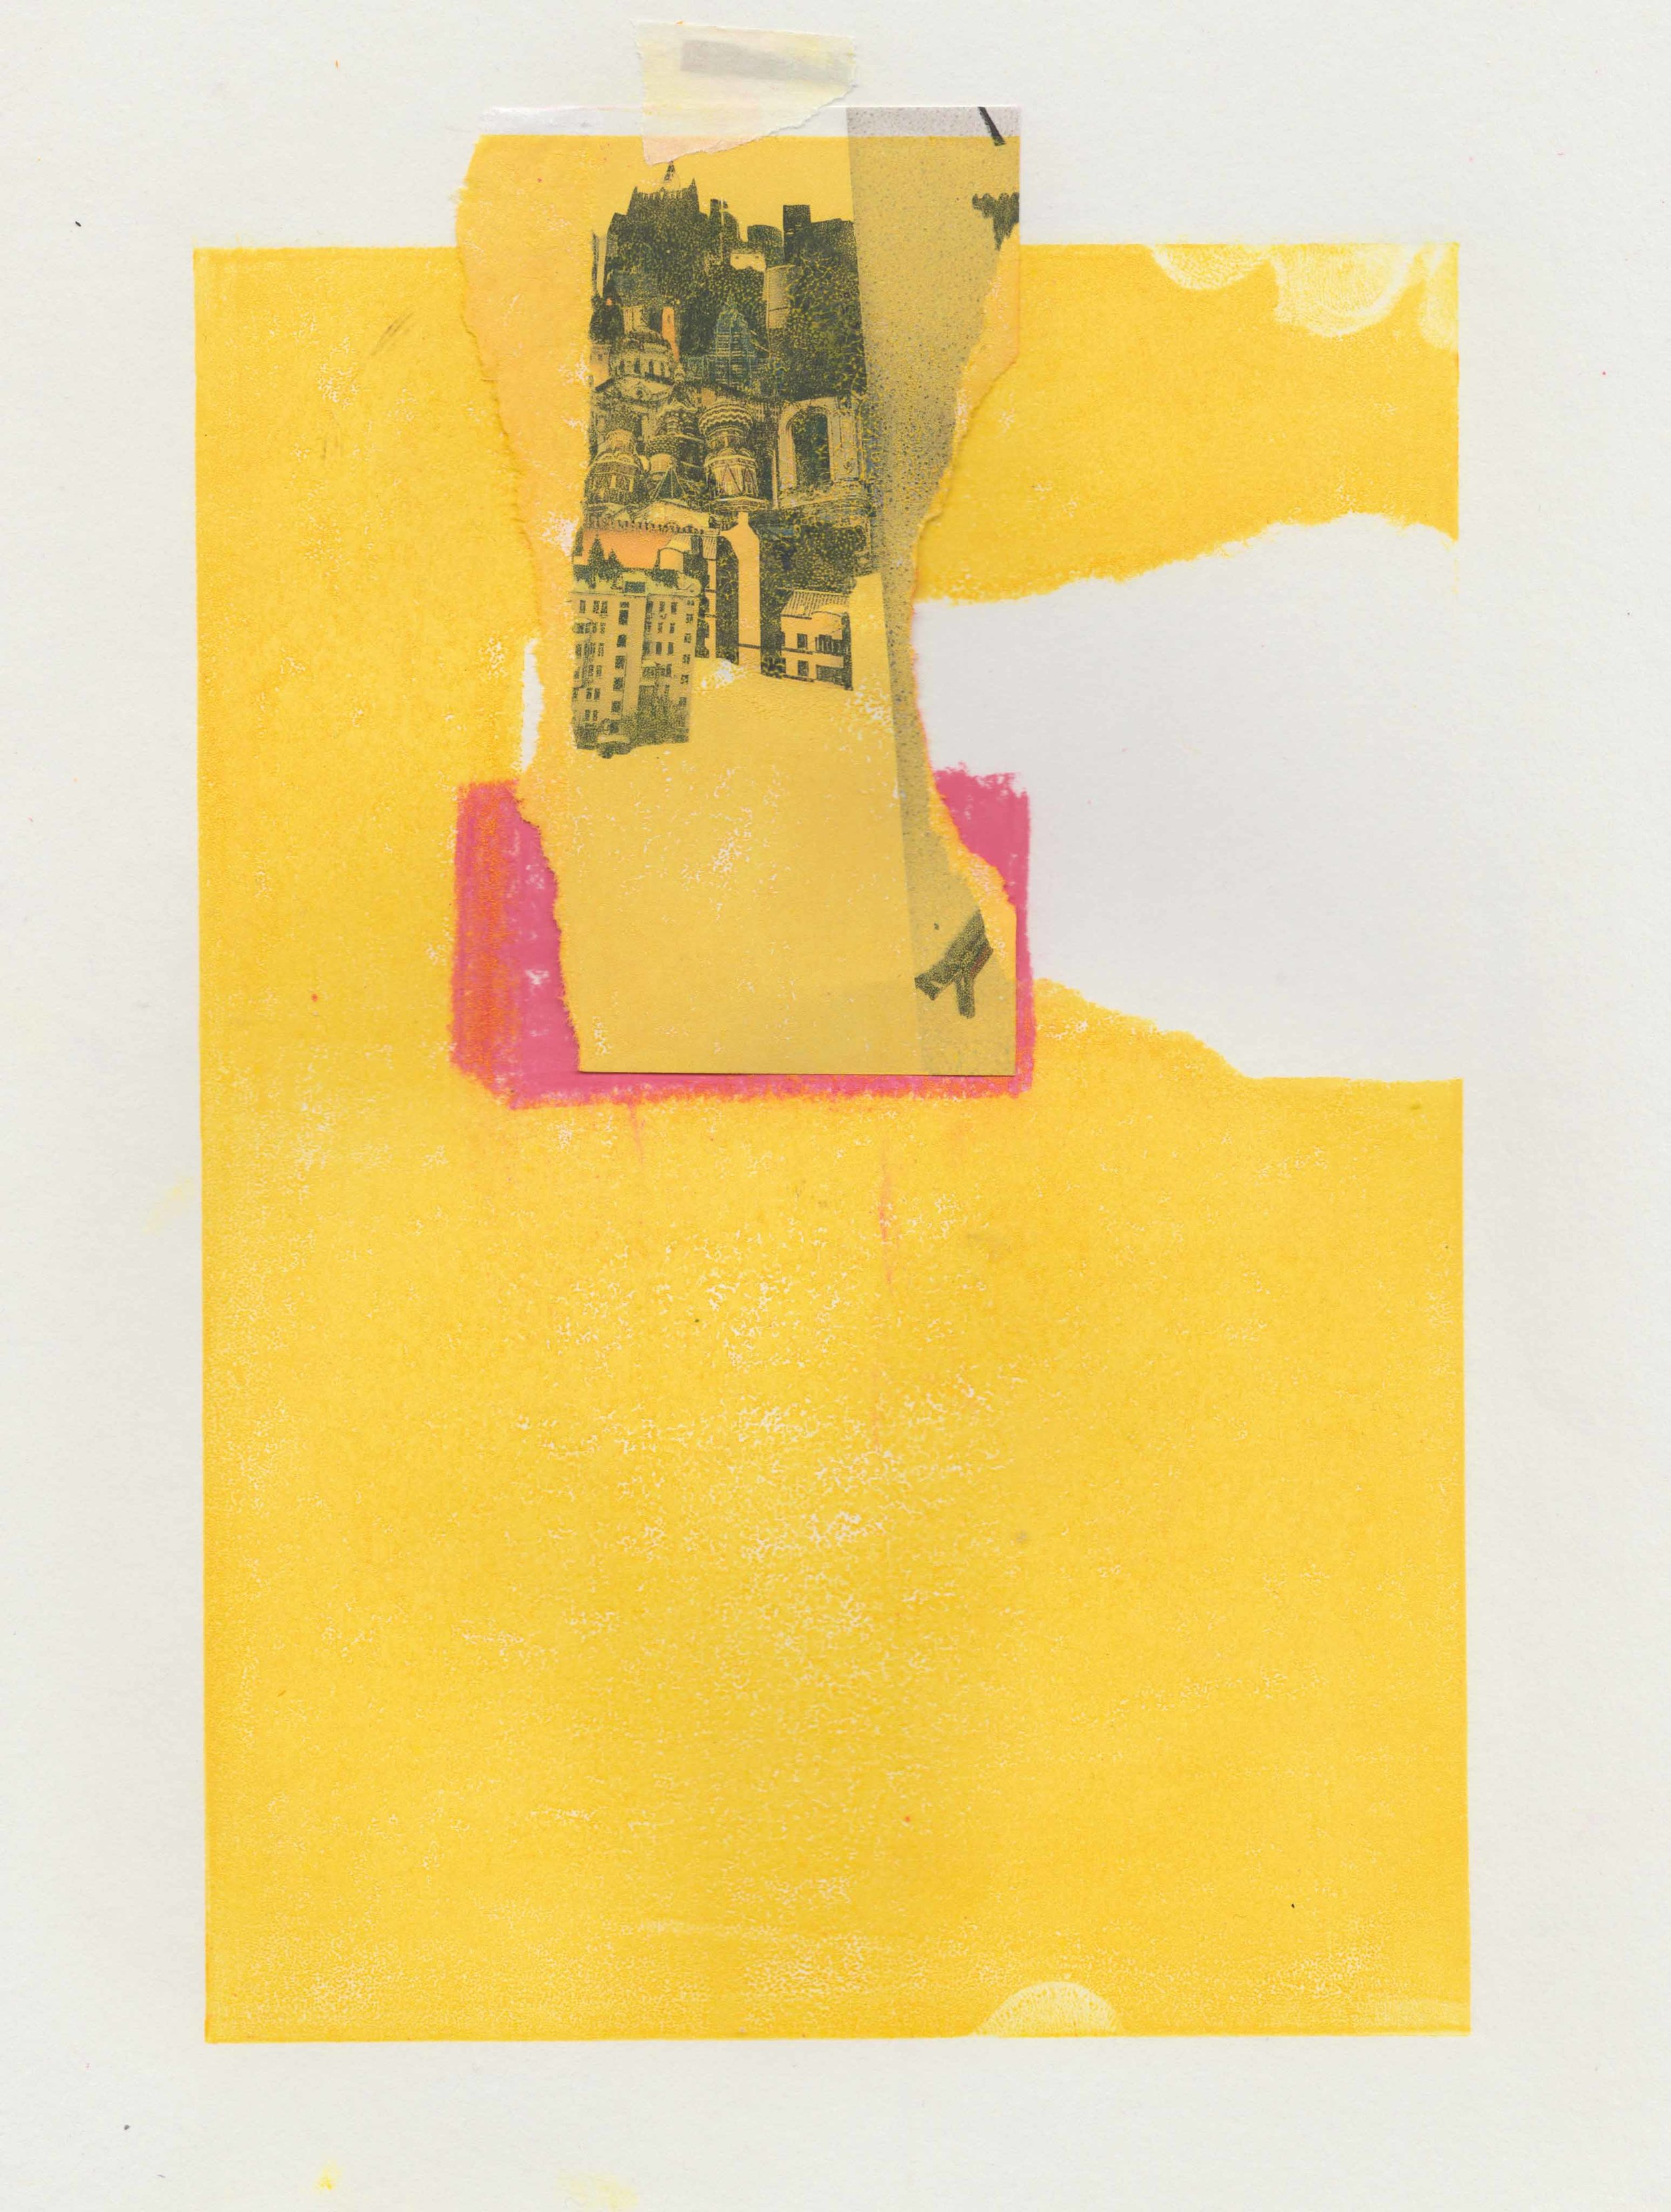 (Yellow Thursday) Lino print, oil pastel collage on paper //March 2018